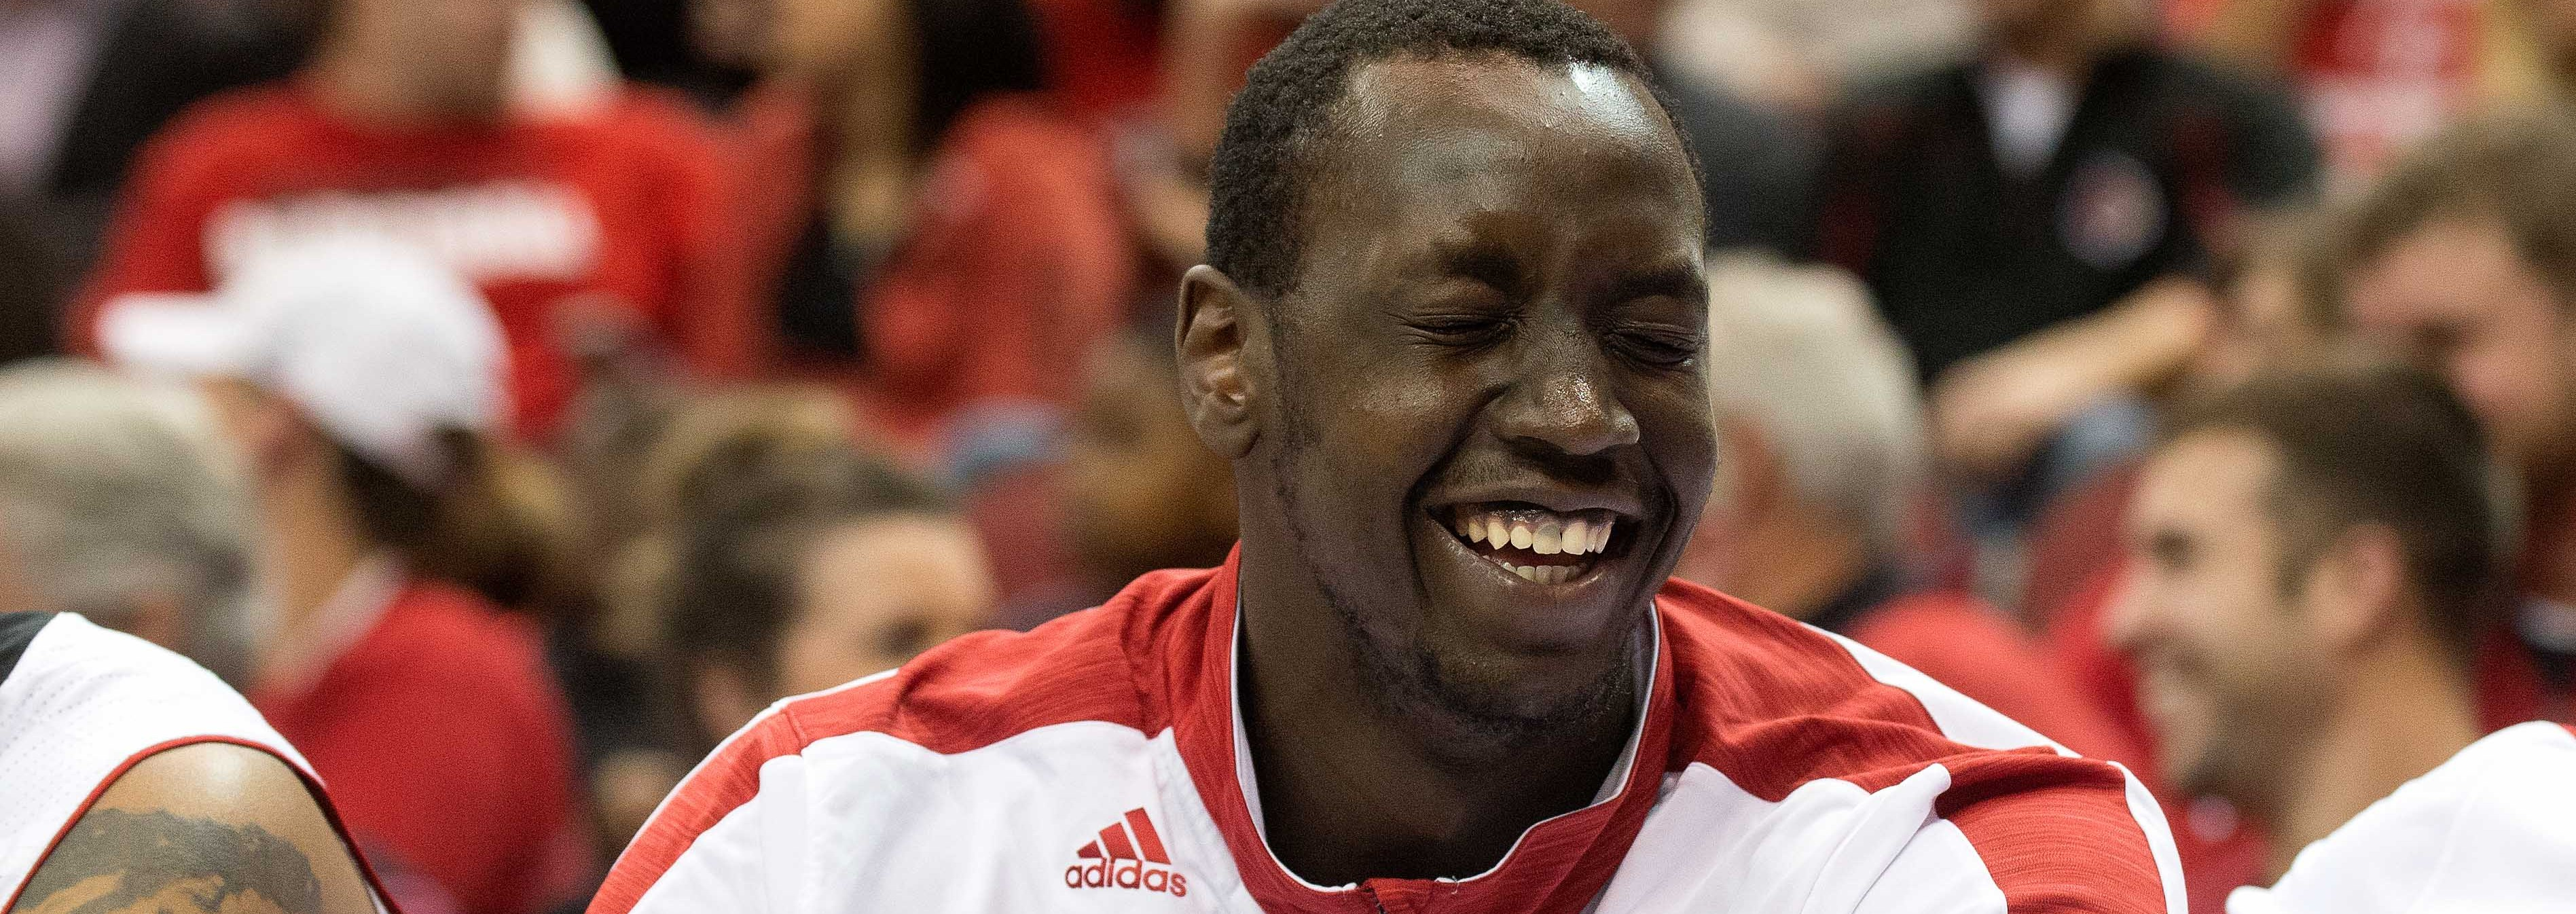 Akoy Agau Laughing vs. Savannah State Fitted Photo by Adam Creech